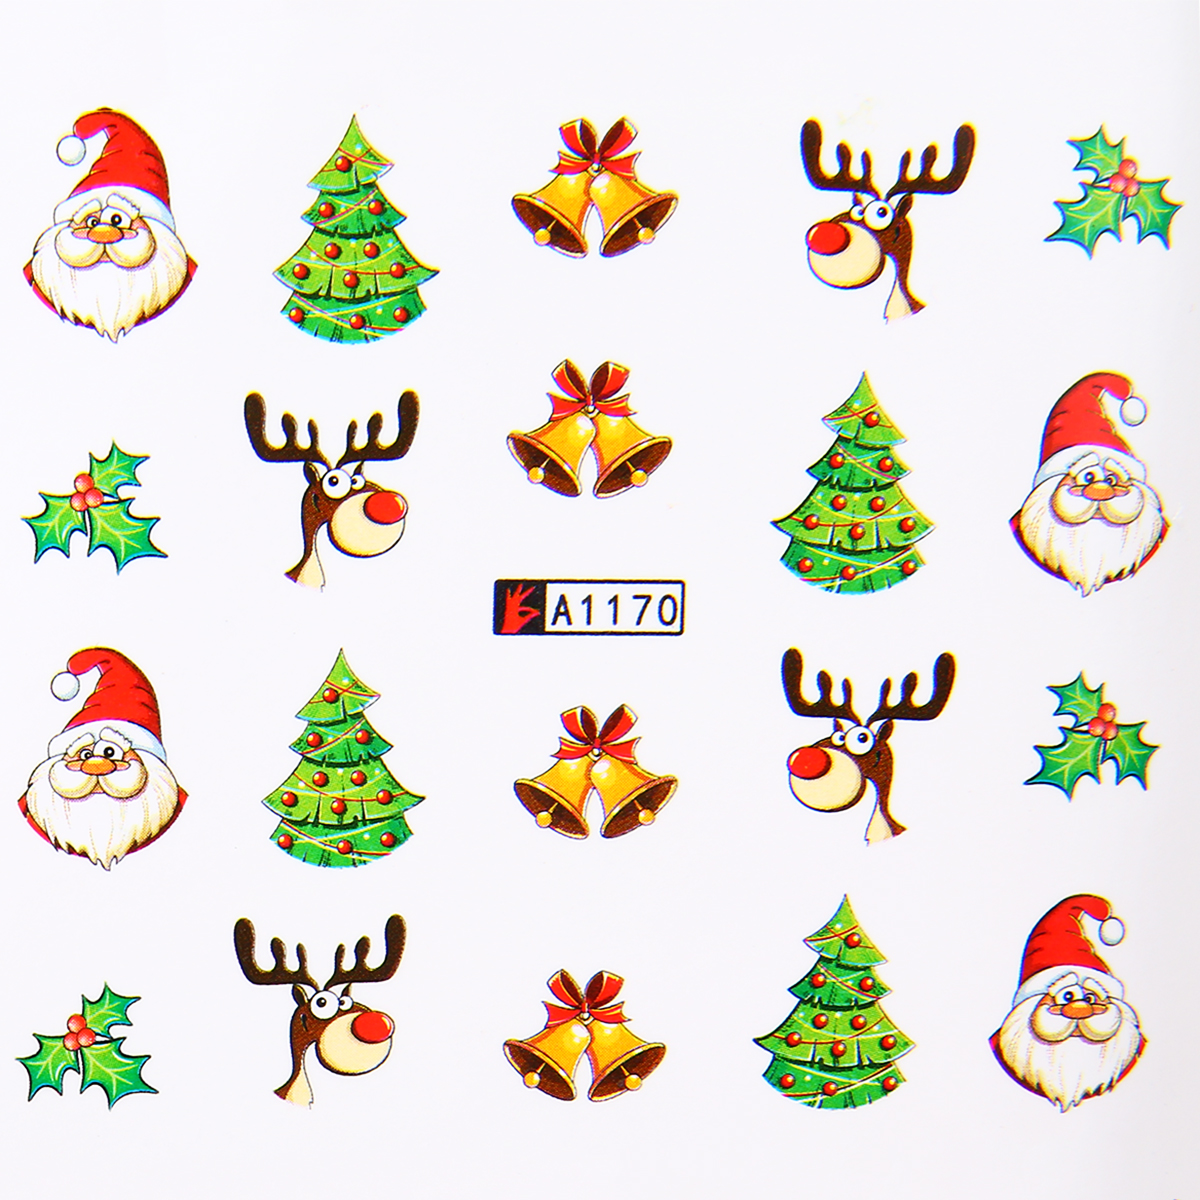 Shellhard 12 Styles Christmas Tree Nail Stickers Snowflakes Snowmen Transfer DIY Kids Christma Nail Decals New Year Gift